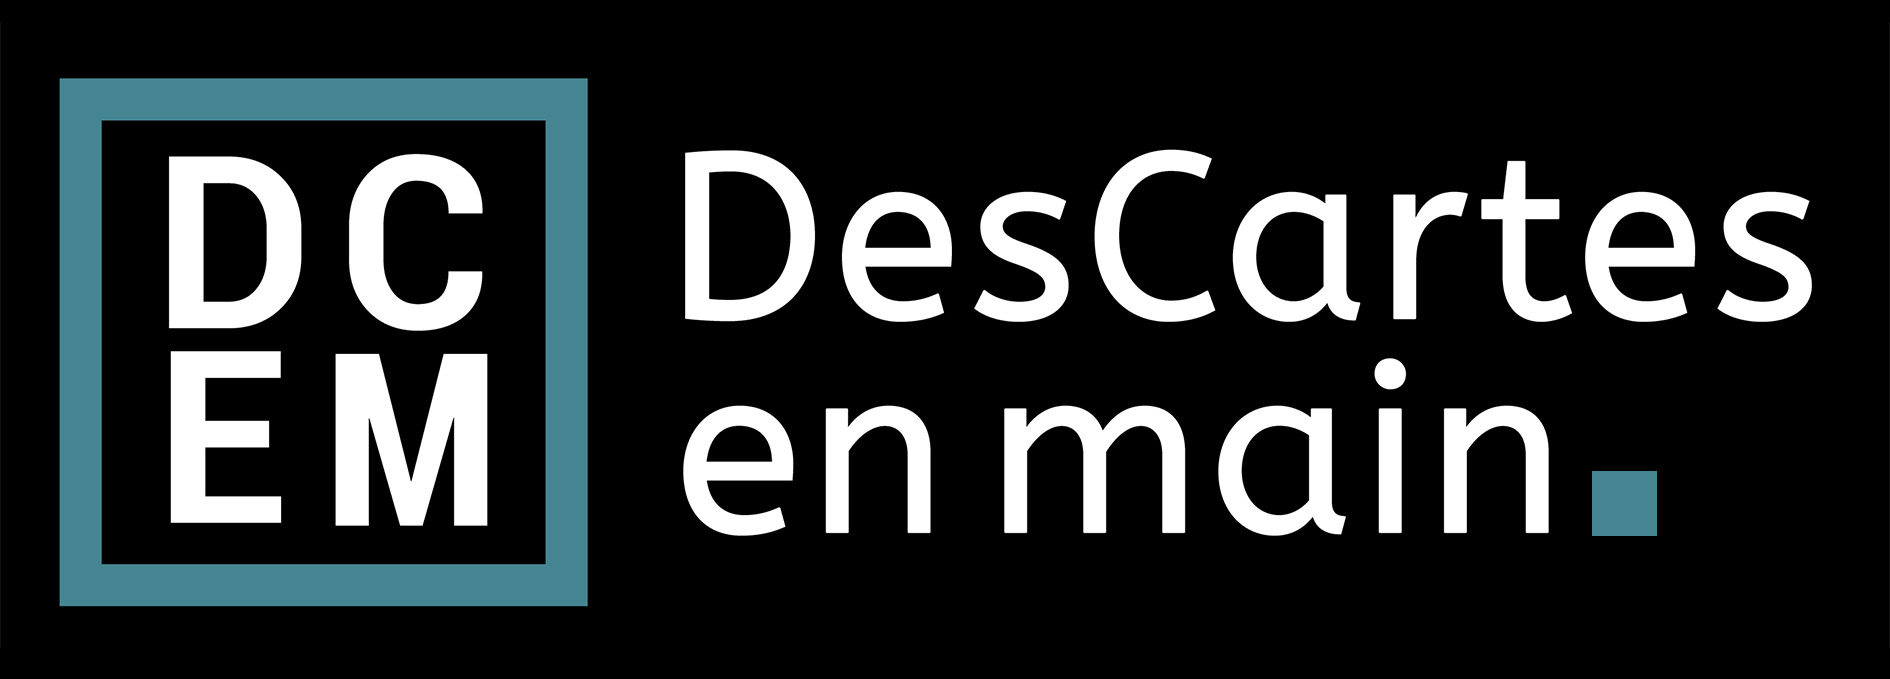 DesCartes en main